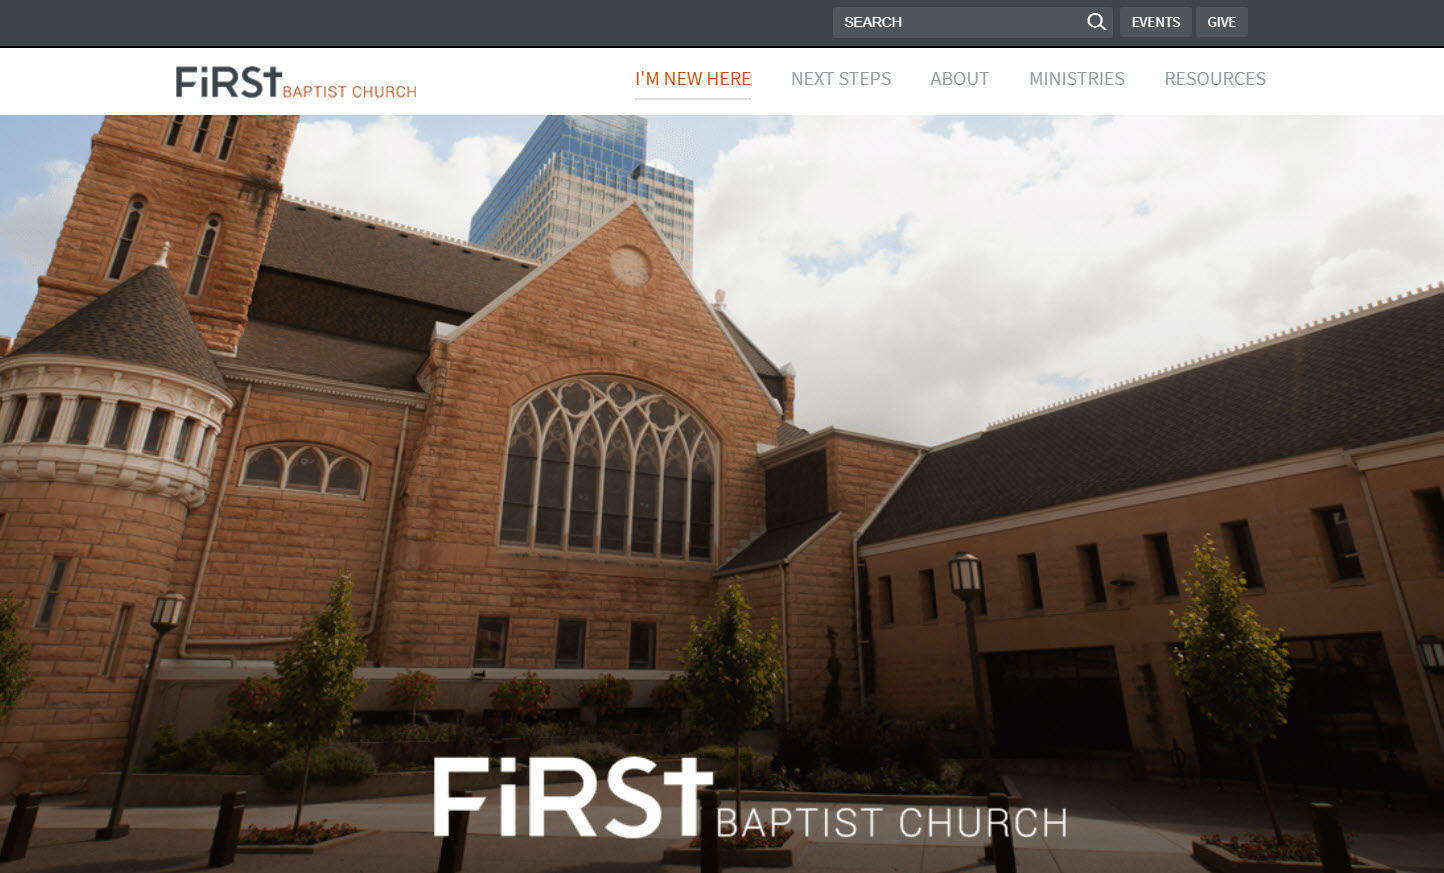 First Baptist Church Minneapolis